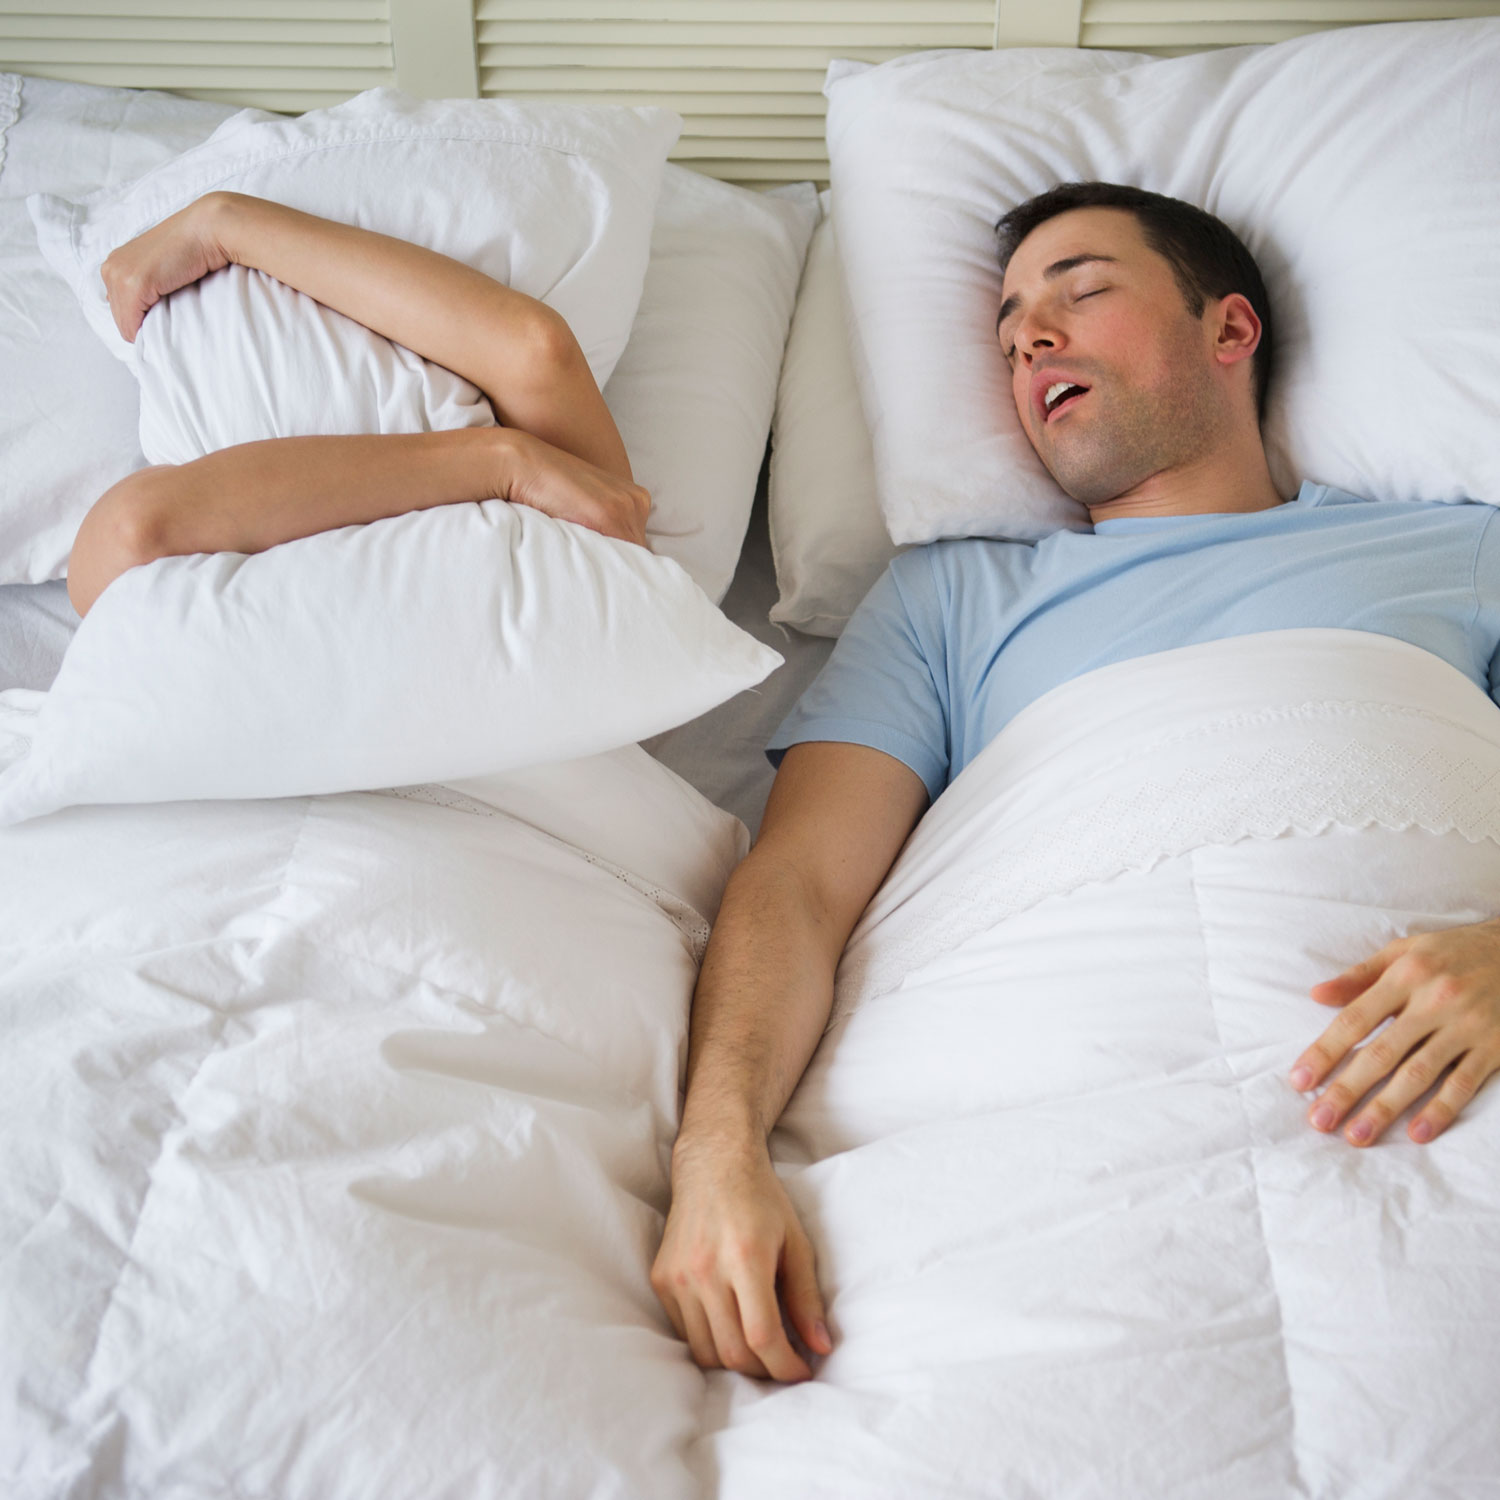 man and woman in bed - woman covering her face with pillow, man calmly sleeping